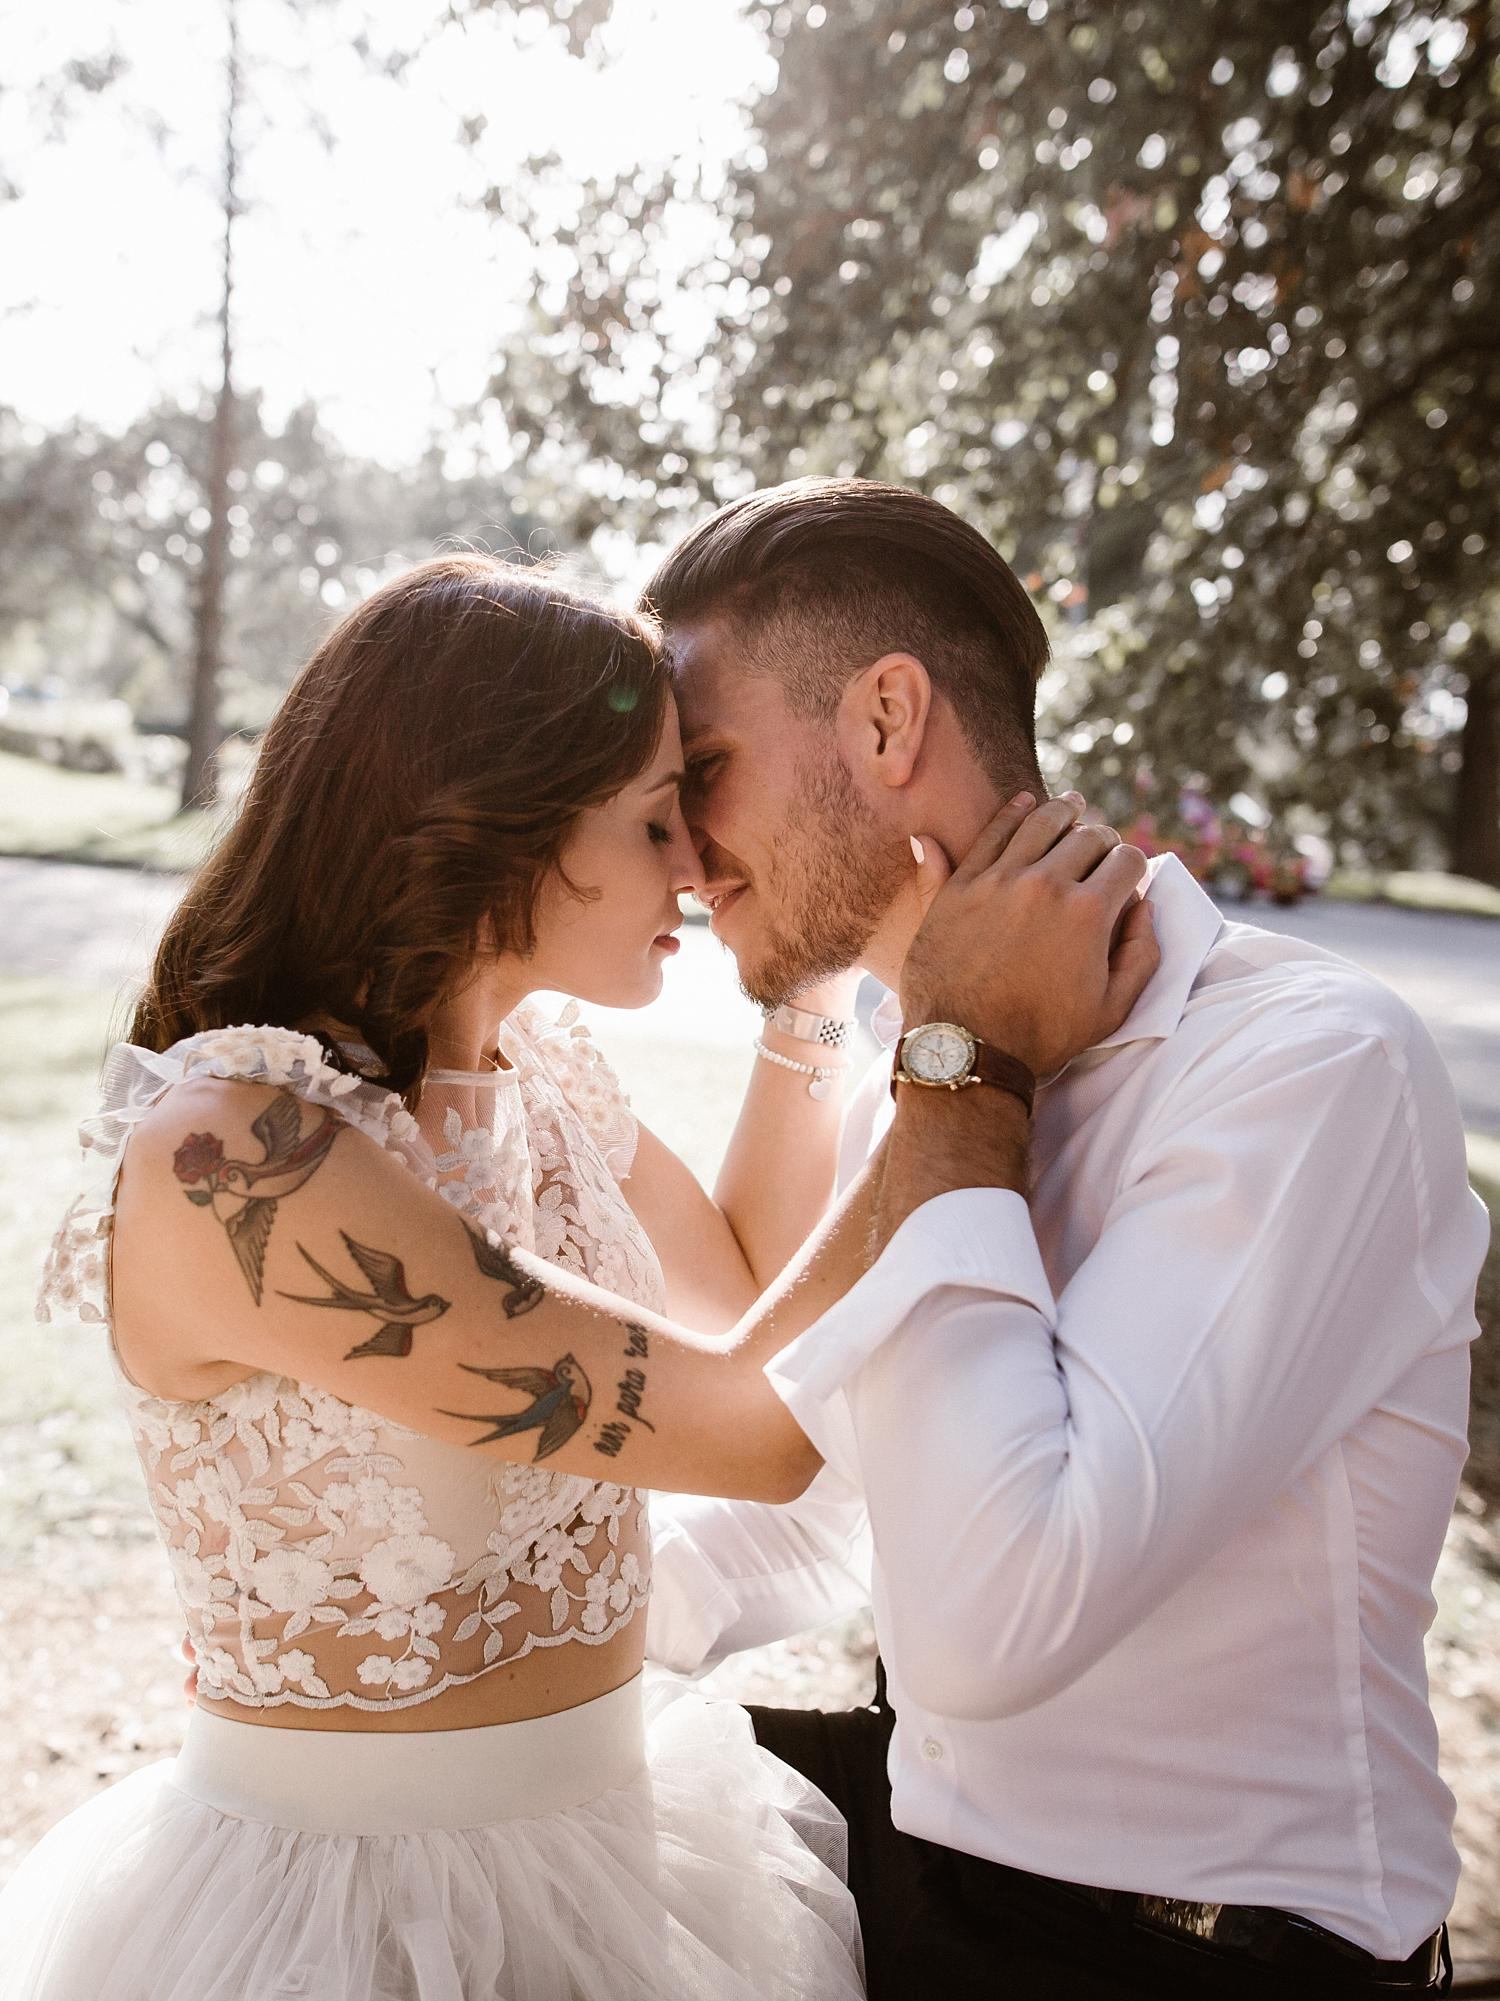 weddingphotographer florence 17 - Maddalena & Arturo - A Chic Anniversary Session in Florence